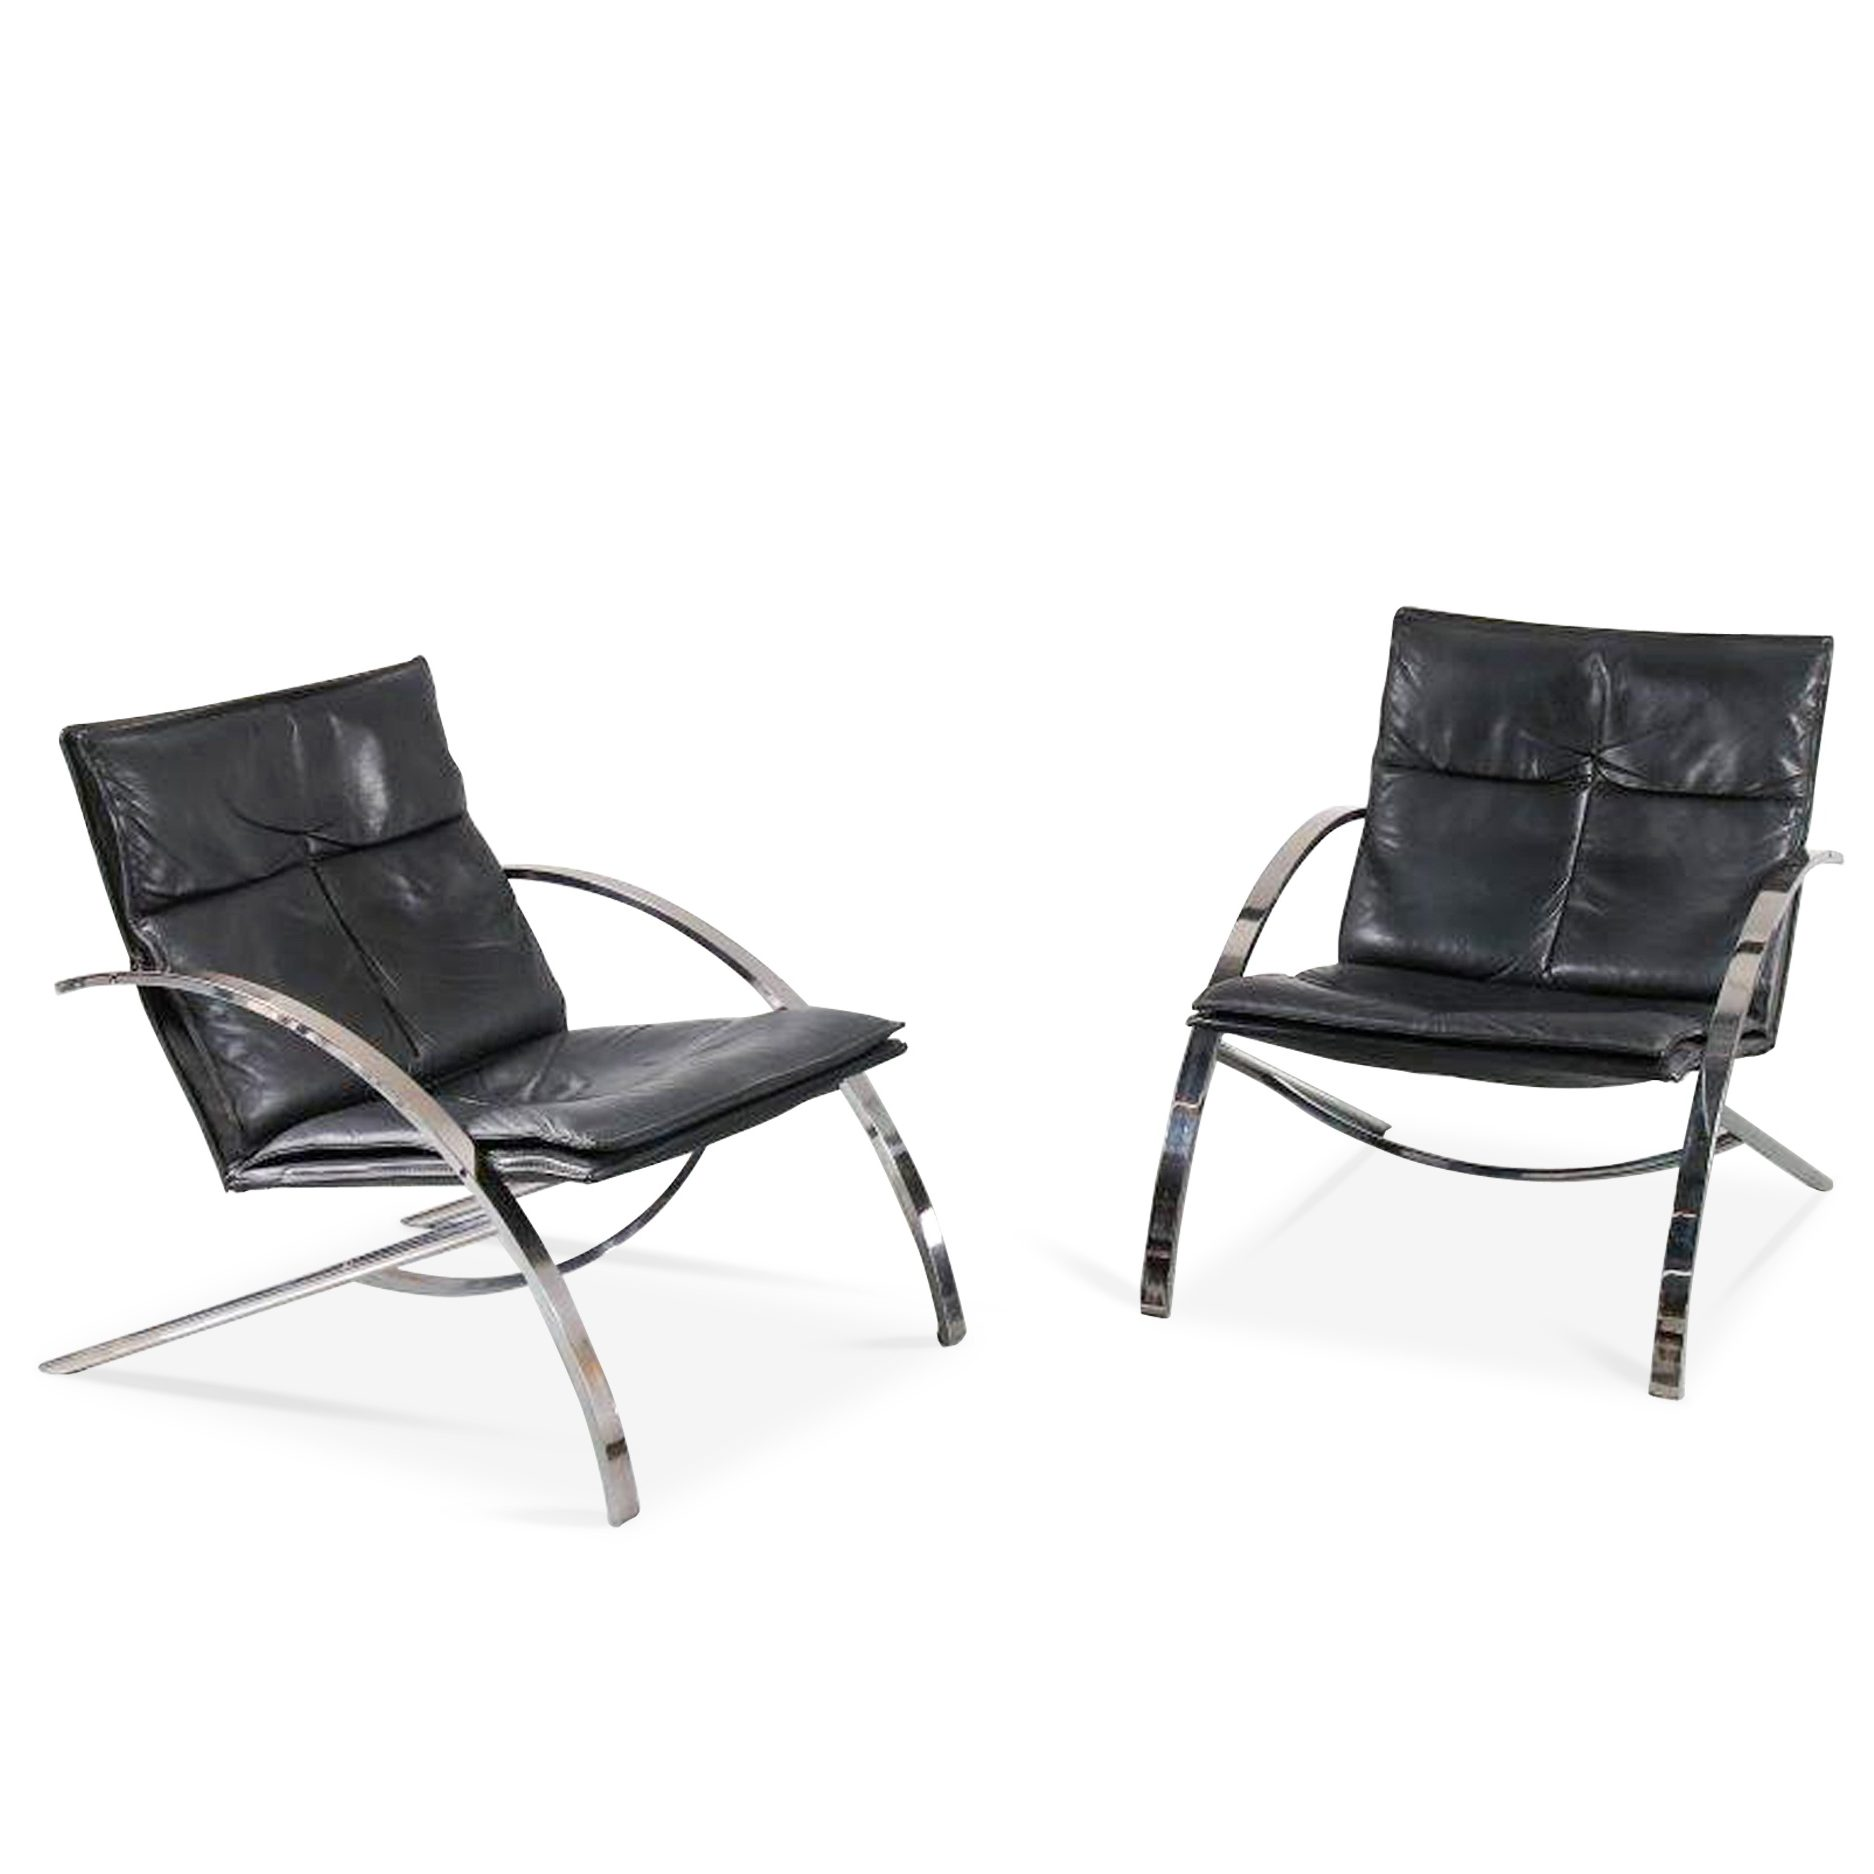 1976 Lounge chairs by Paul Tuttle for Strassle